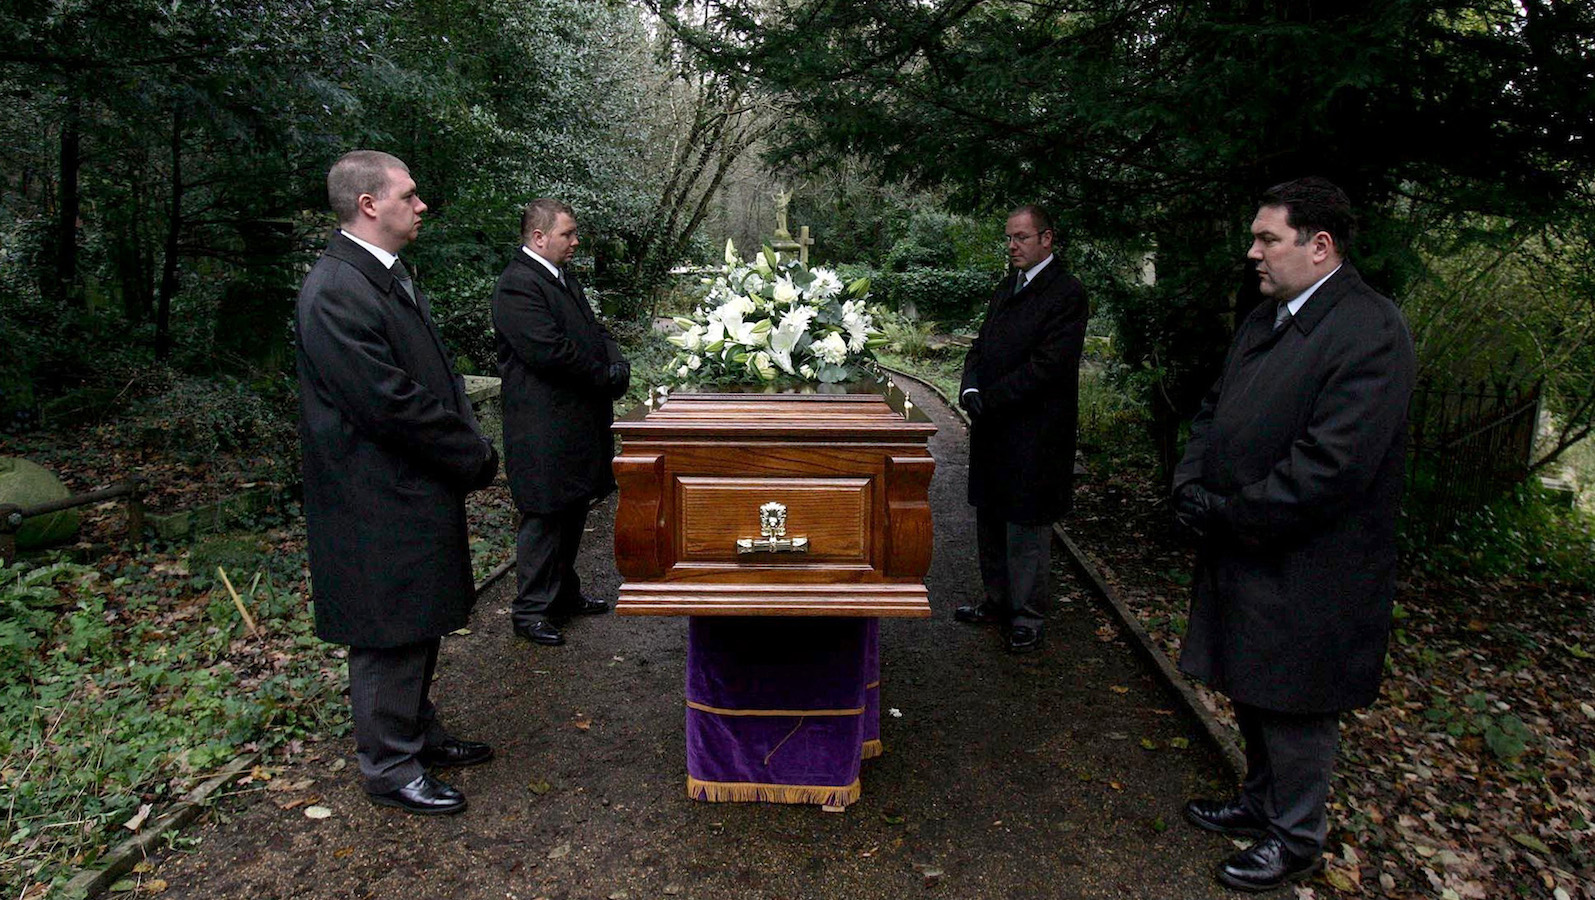 Coffin bearers stand with the coffin of former Russian spy Alexander Litvinenko during his funeral at Highgate Cemetery in London December 7, 2006. Russian prosecutors launched their own murder investigation on Thursday into the death in London from radiation poisoning of Russian ex-spy Litvinenko, in parallel to a British probe already under way. REUTERS/Cathal McNaughton/Pool (BRITAIN) - RTR1K5K4